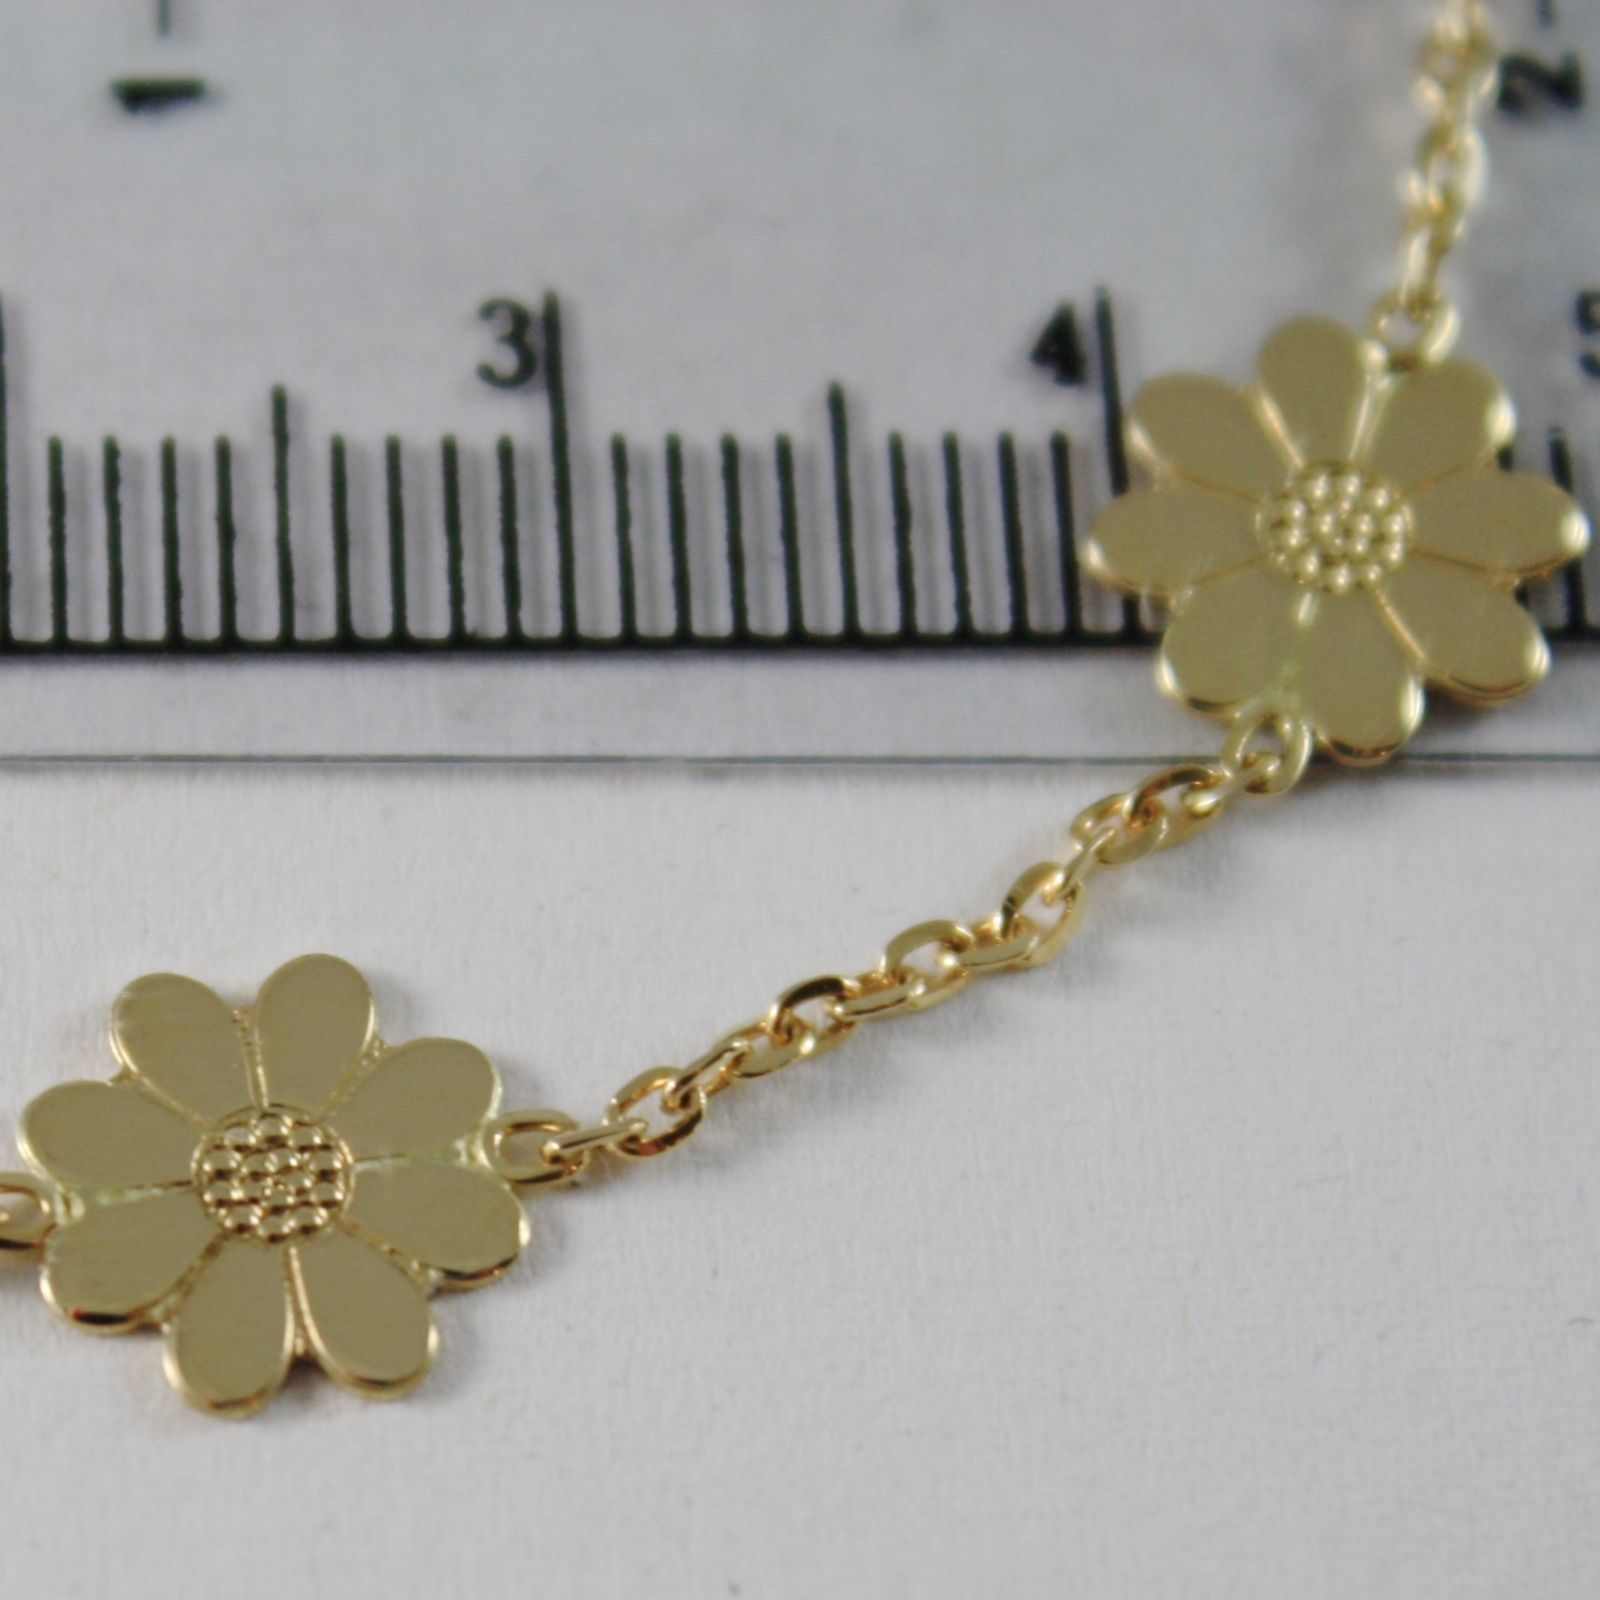 18K YELLOW GOLD BRACELET LITTLE DAISY FLOWER 9 MM, 7.10 INCHES MADE IN ITALY